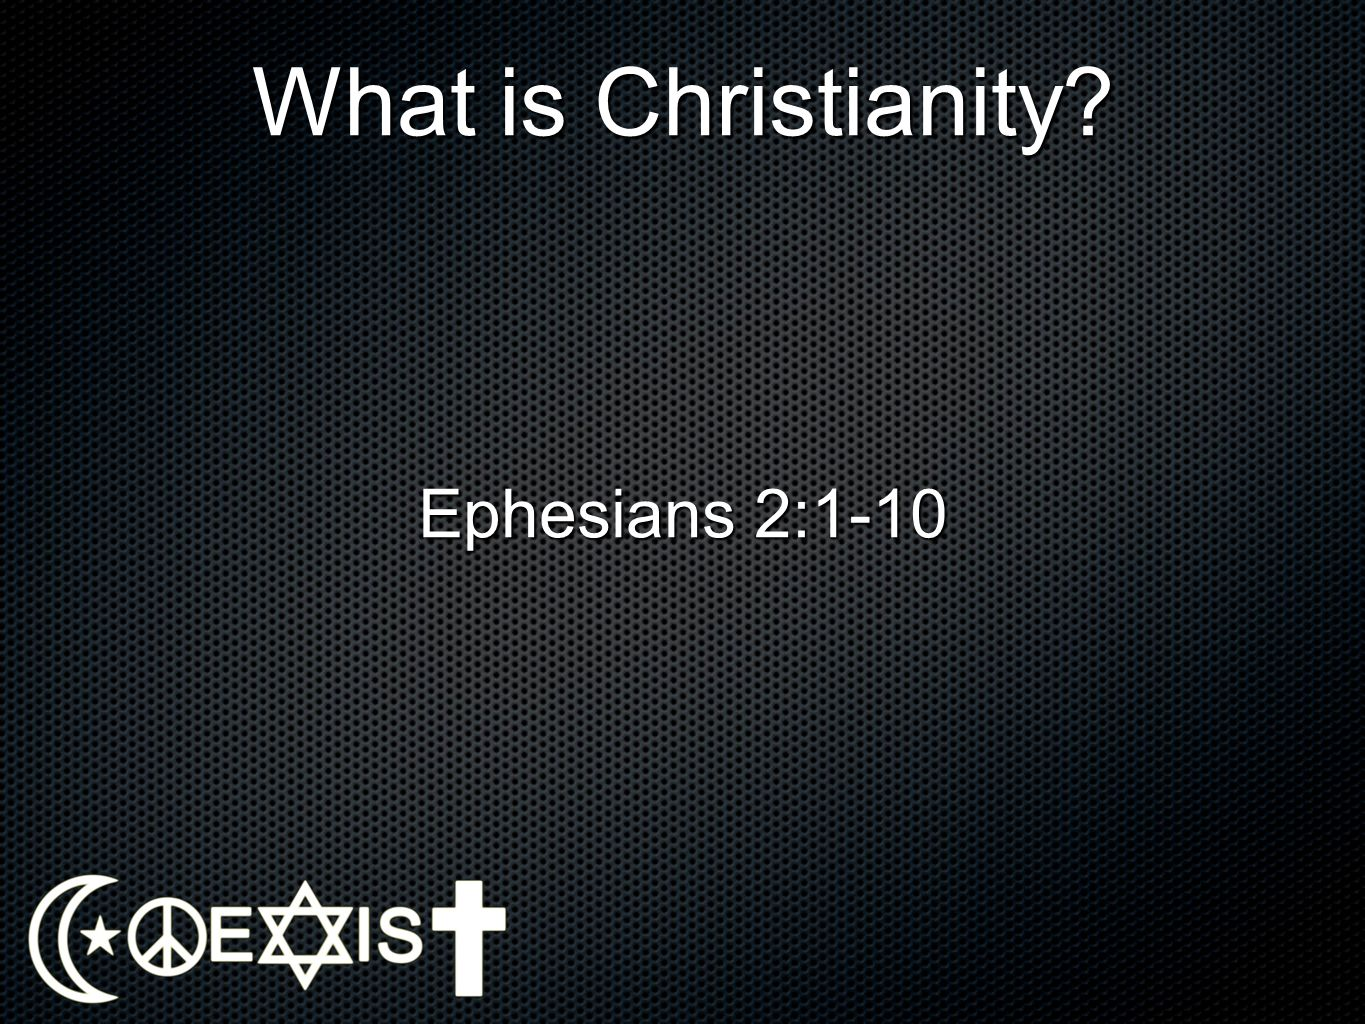 What is Christianity Ephesians 2:1-10